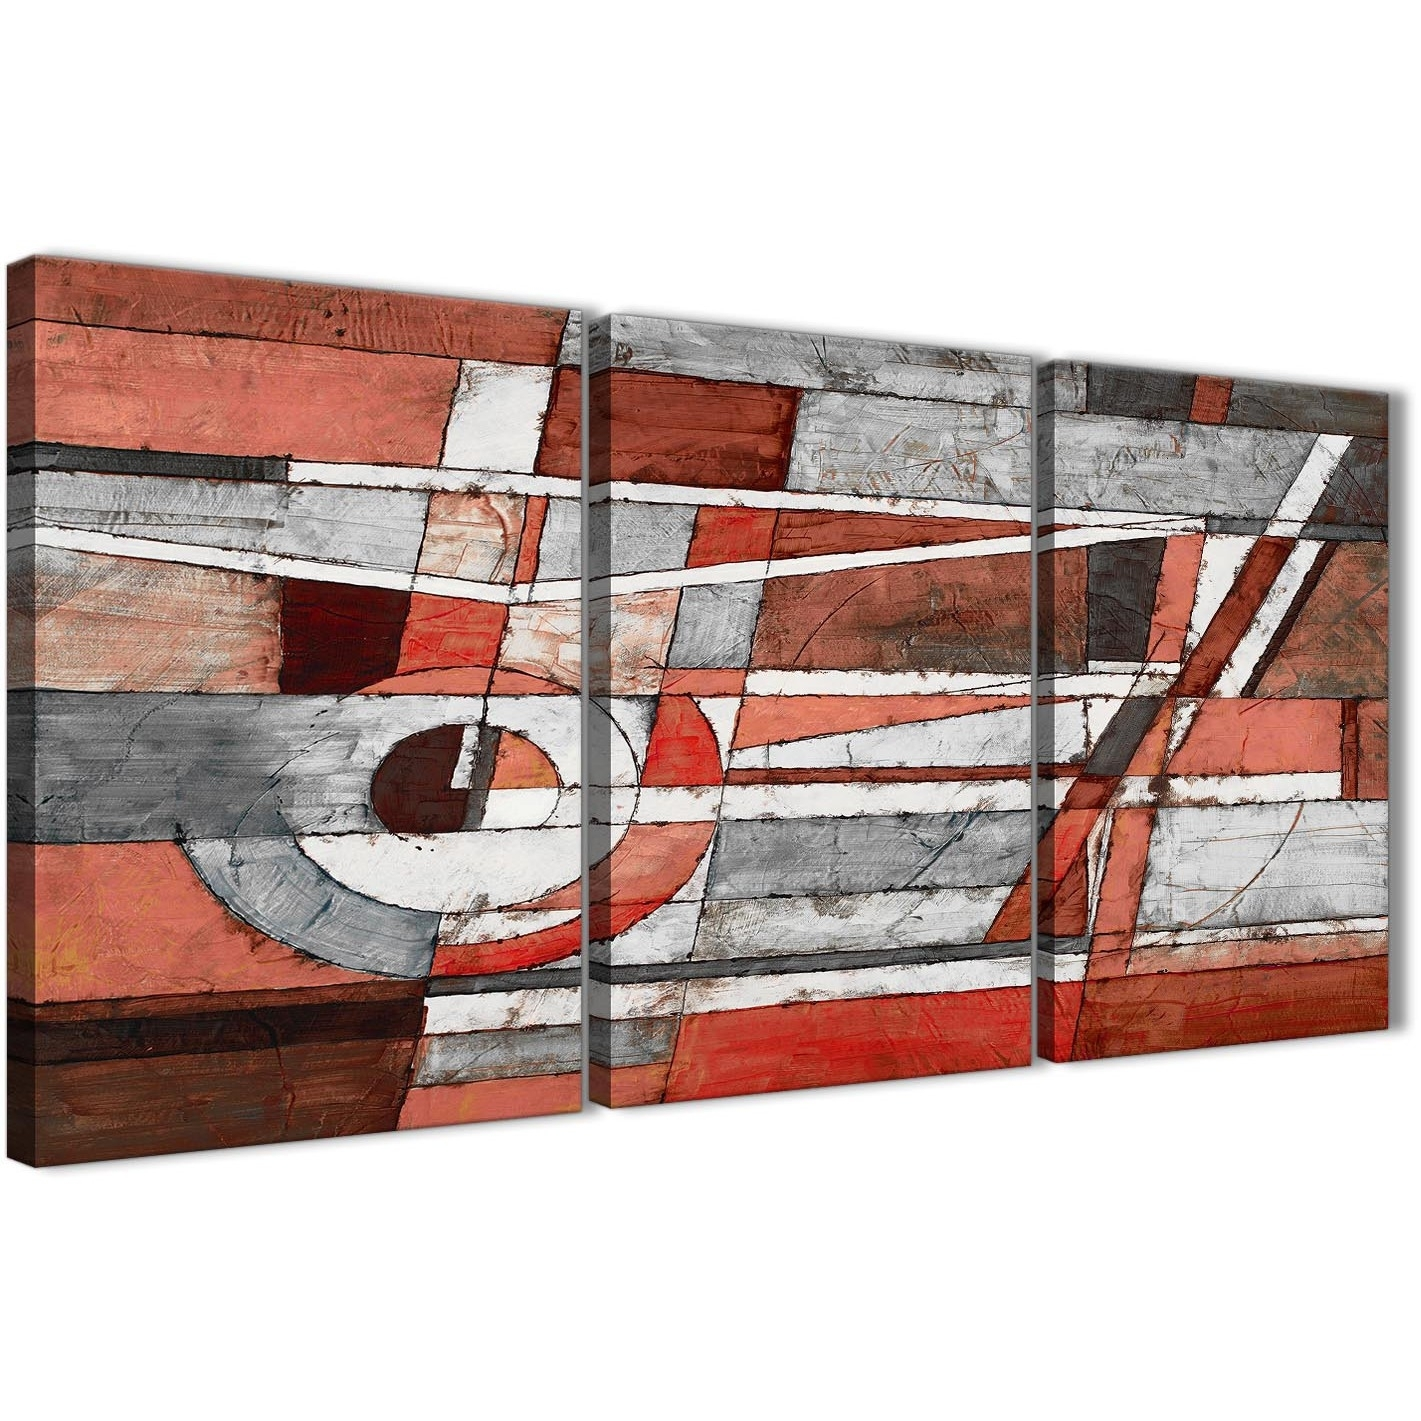 3 Panel Red Grey Painting Living Room Canvas Wall Art Decor Regarding Kitchen Canvas Wall Art (Photo 11 of 20)